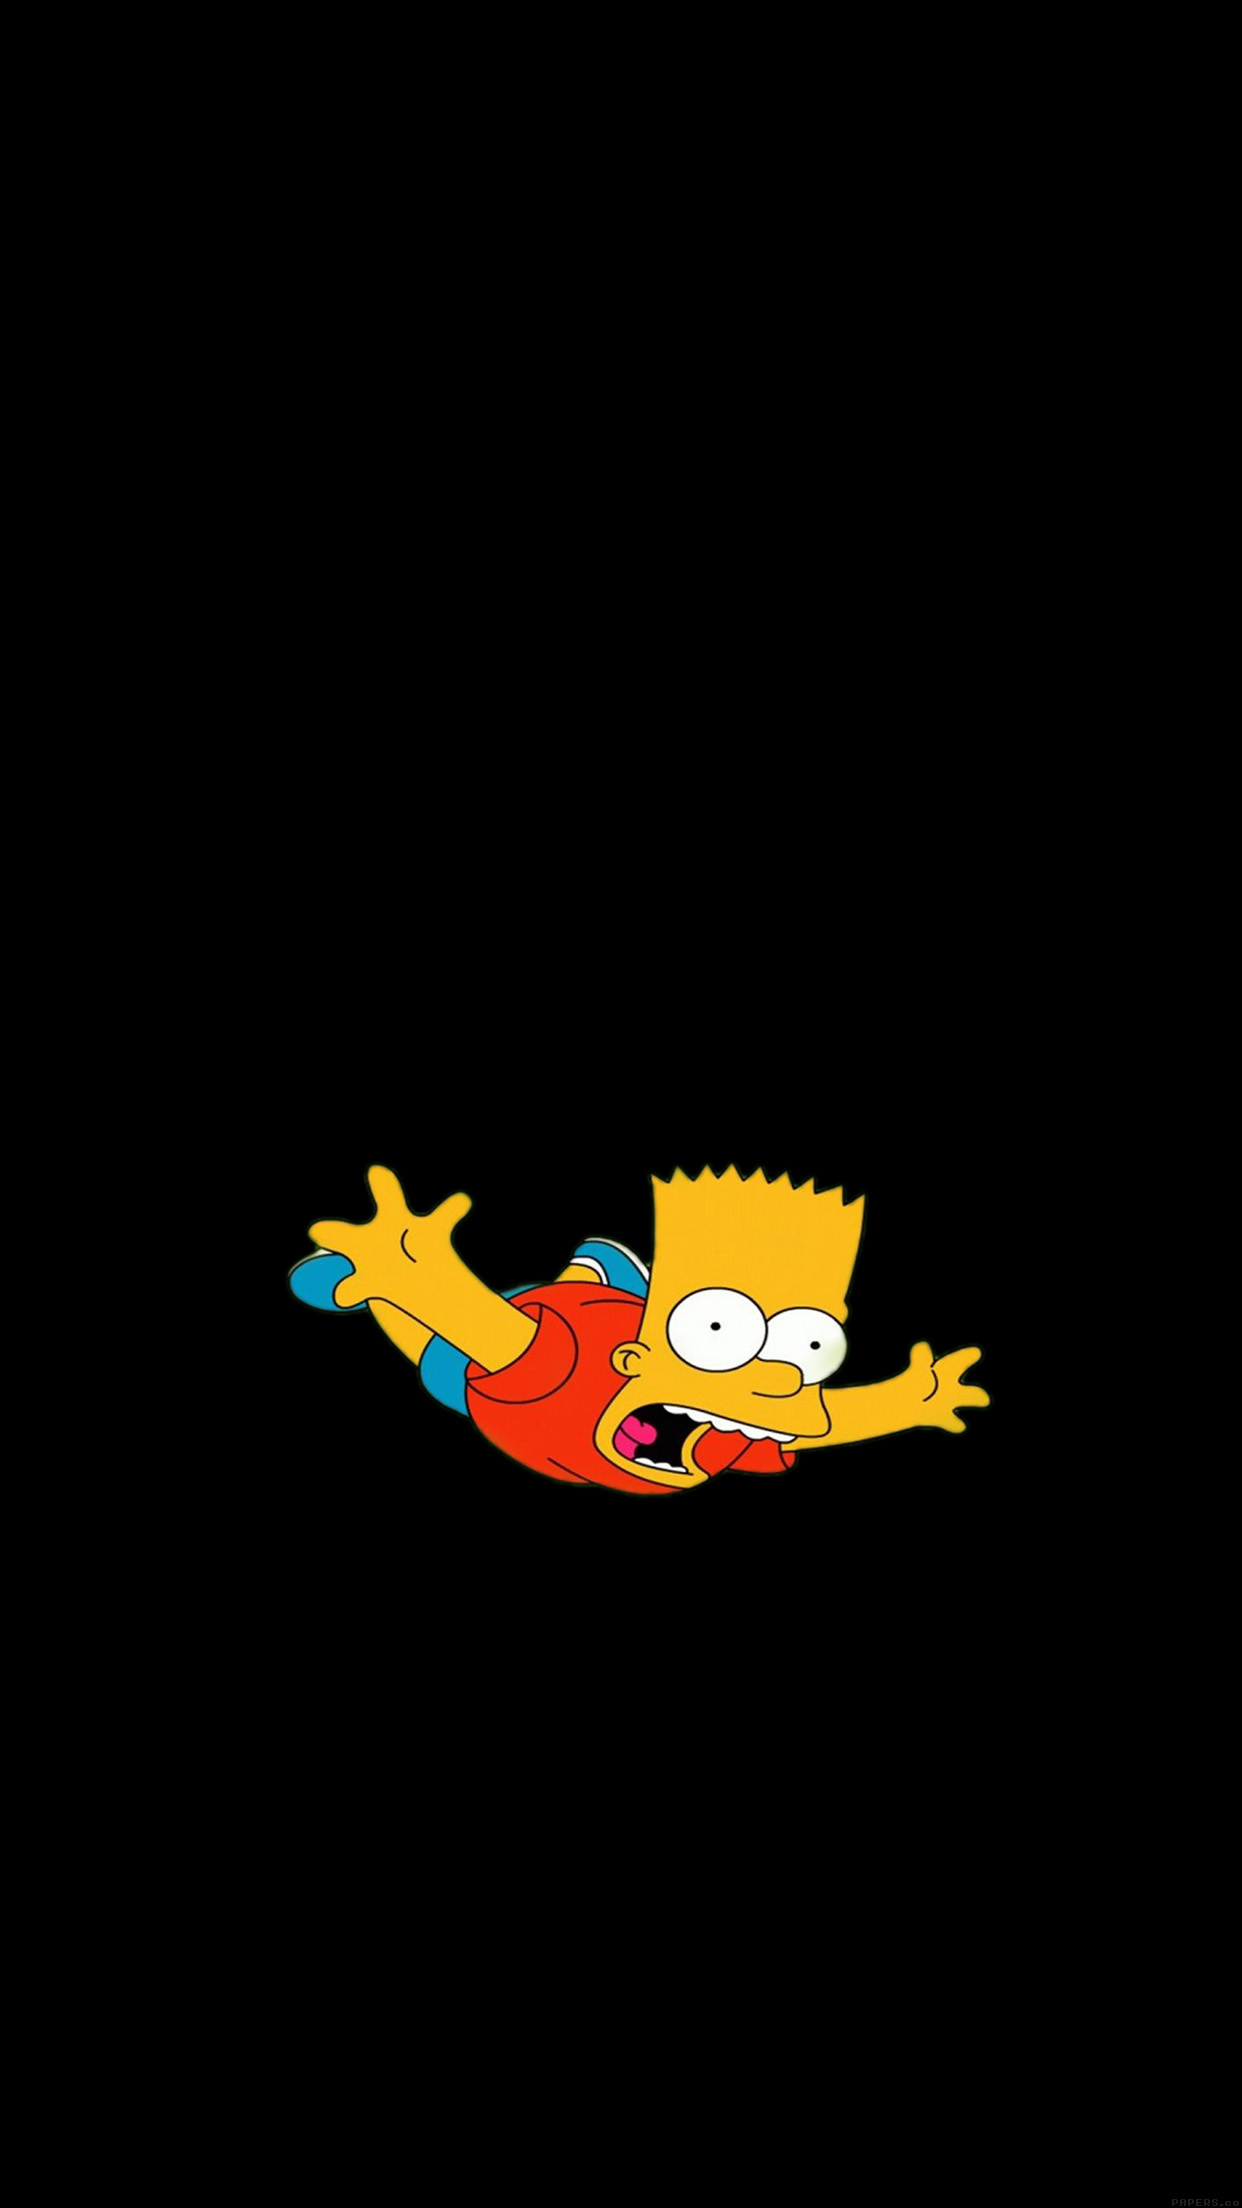 Fall Wallpaper For Iphone 7 Plus Papers Co Iphone Wallpaper Ag70 Bart Simpson Funny